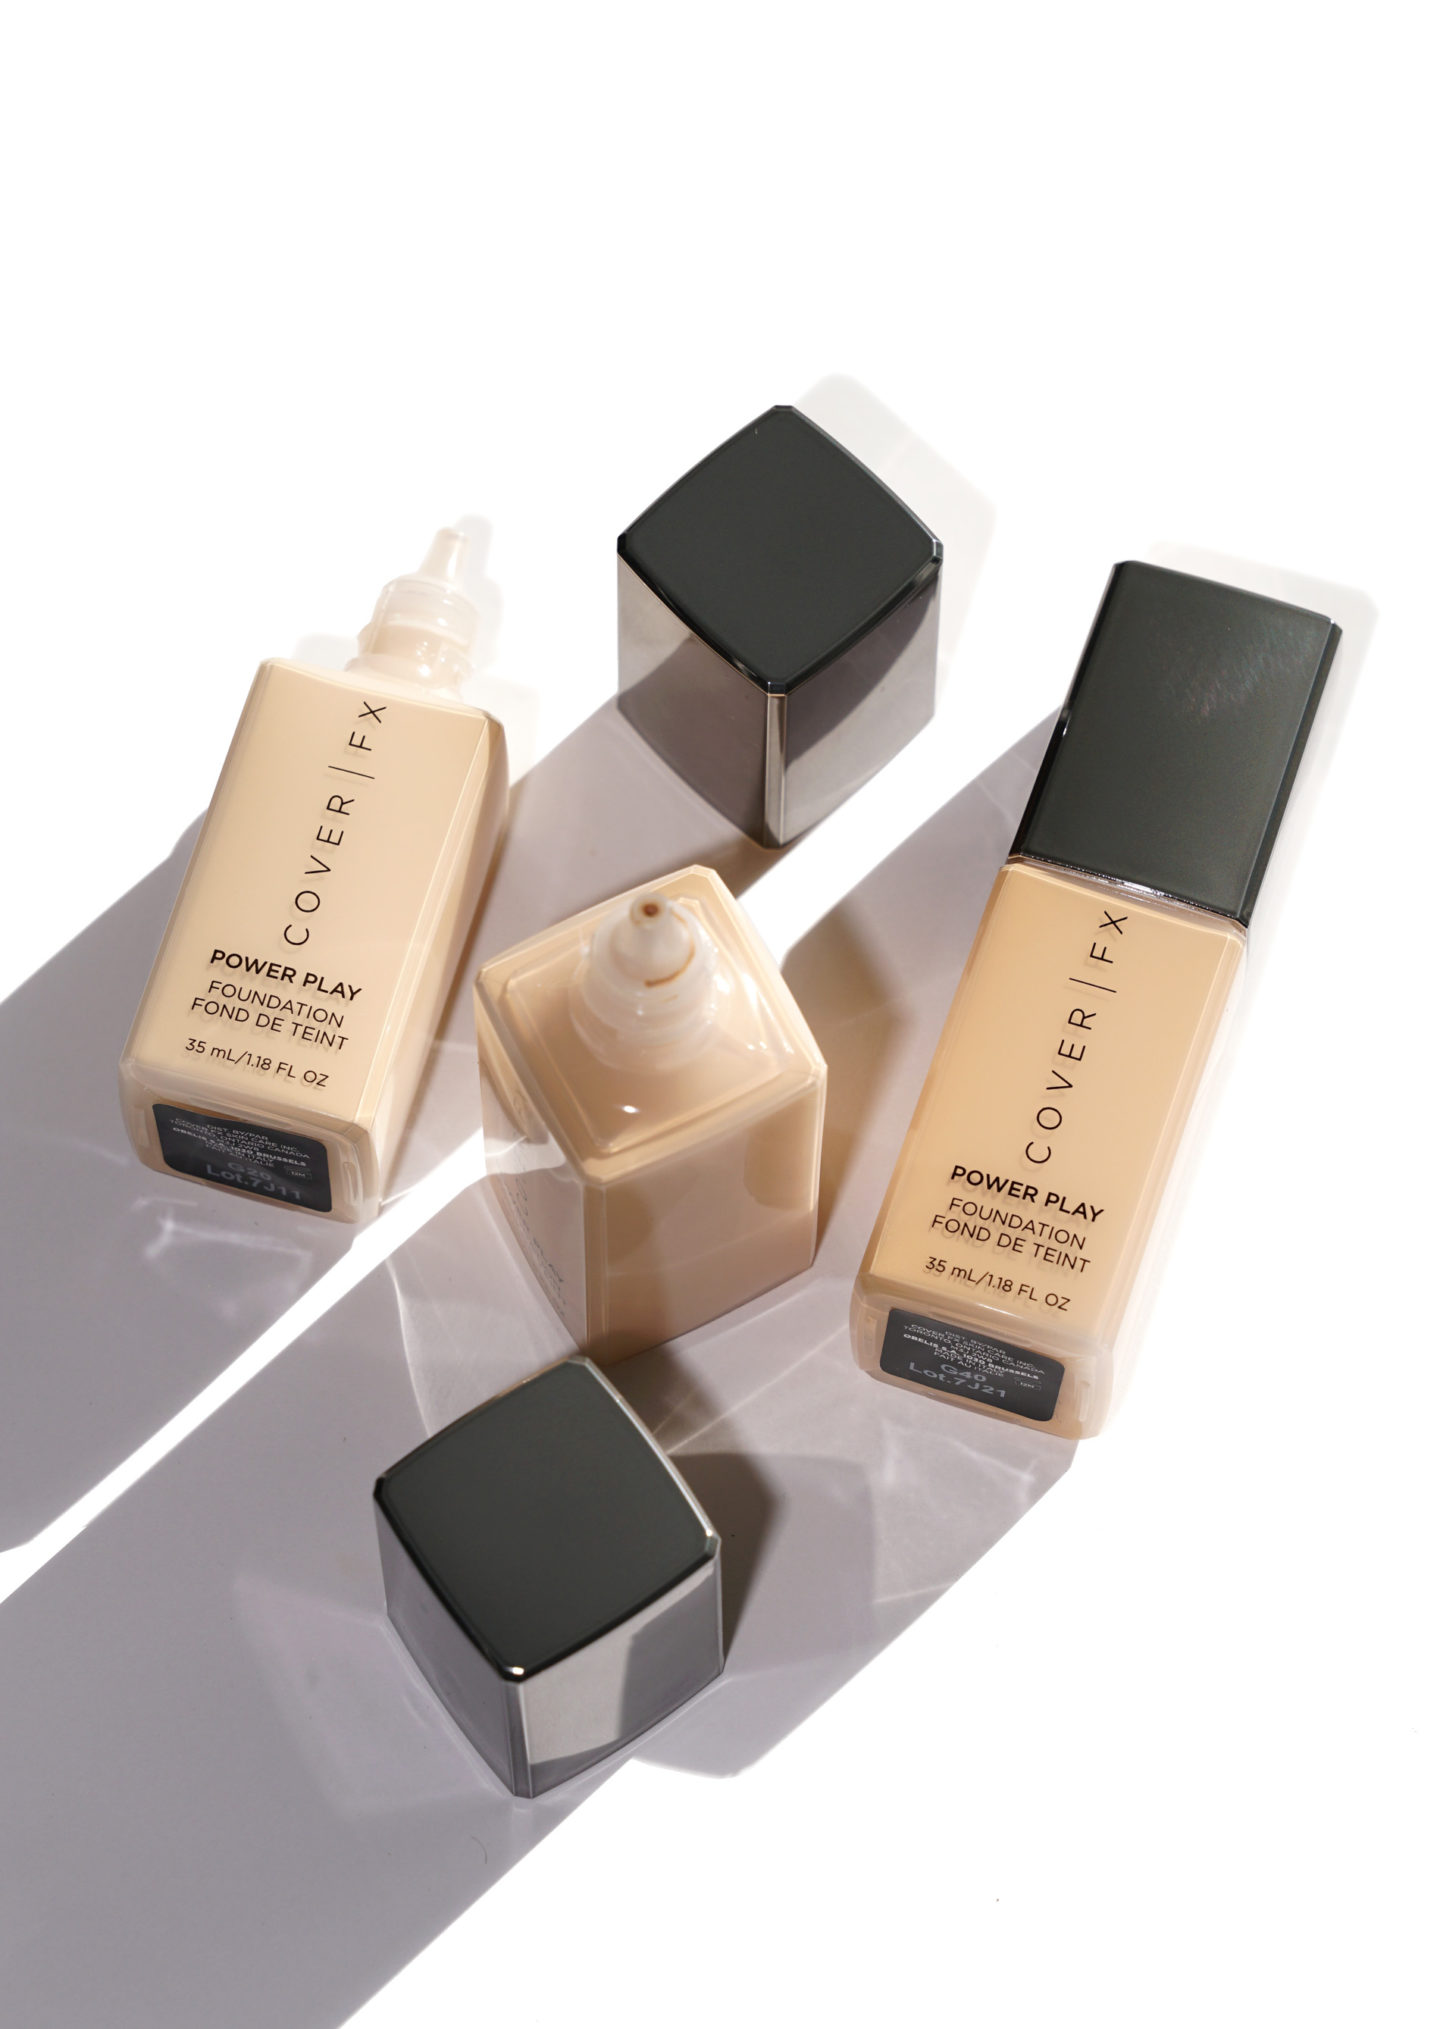 Cover FX Power Play Foundation Review and Swatches